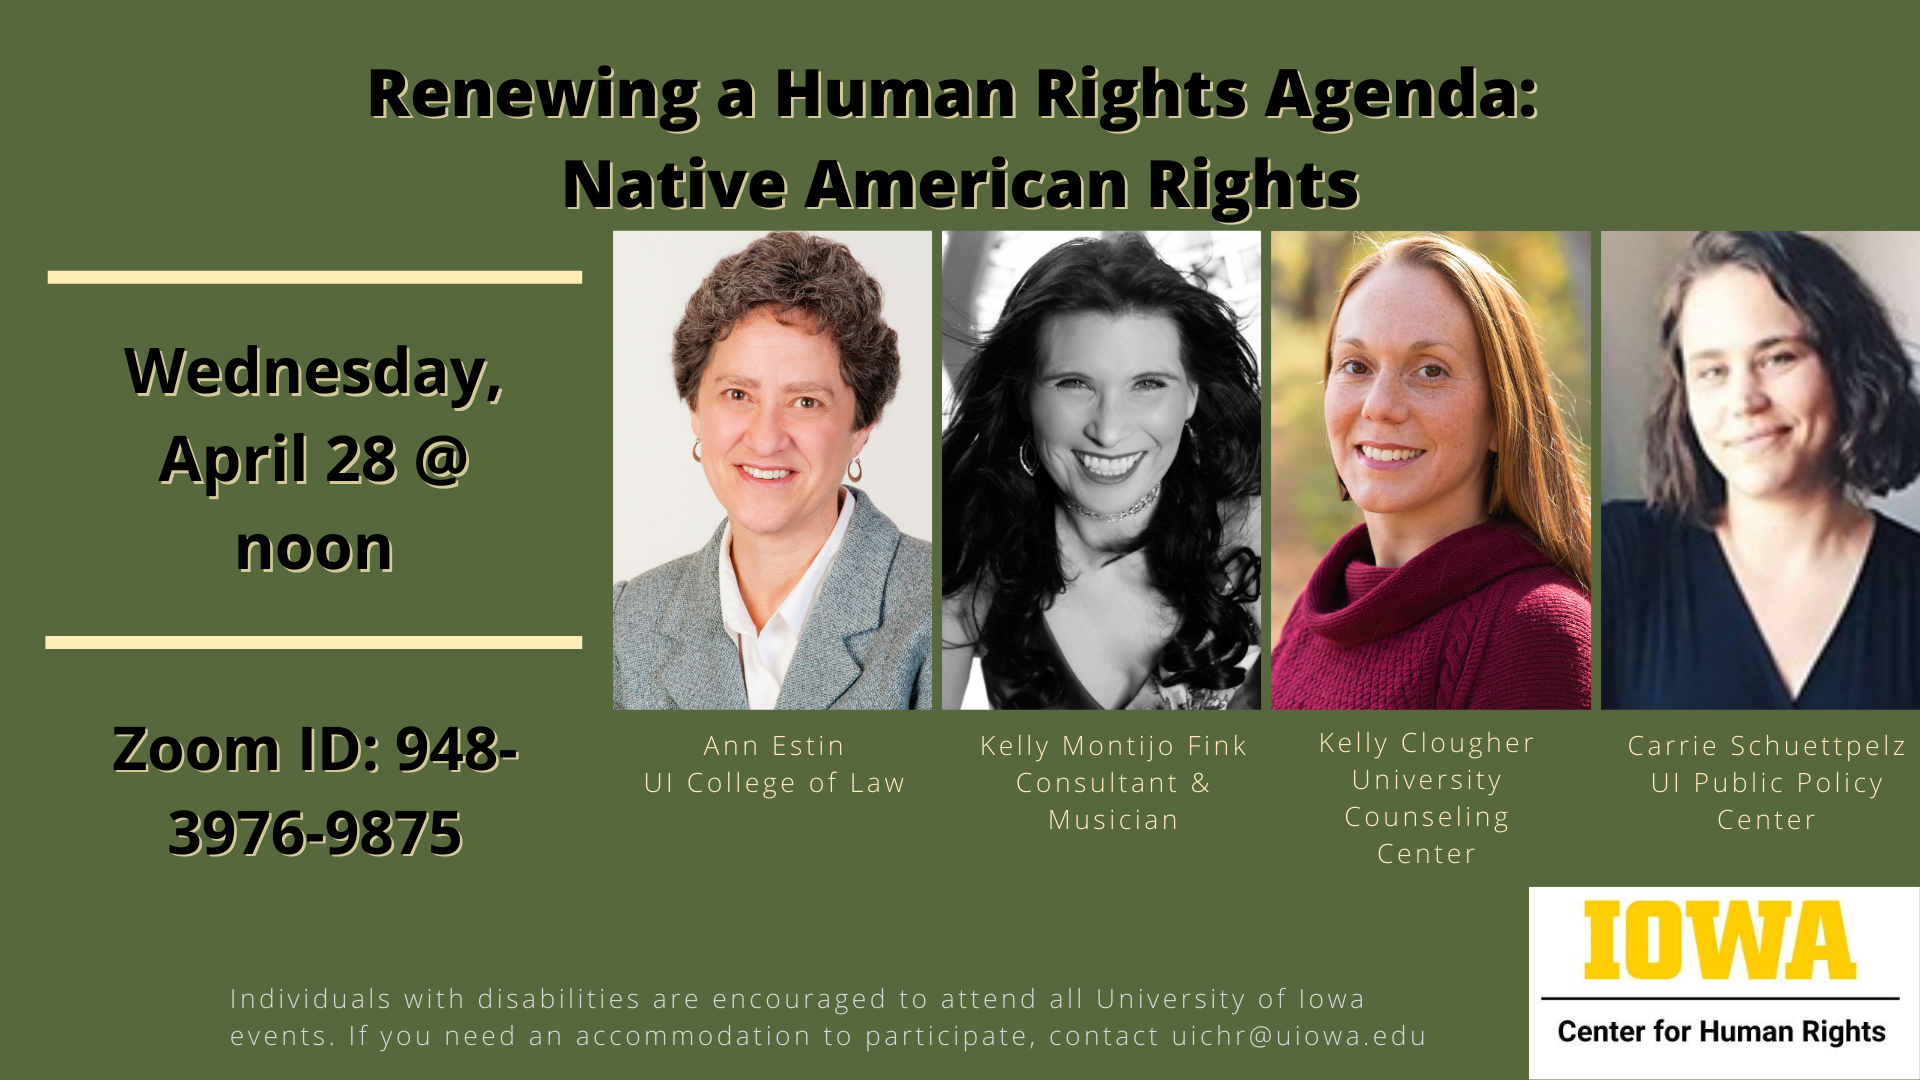 Renewing a Human Rights Agenda: Native American Rights